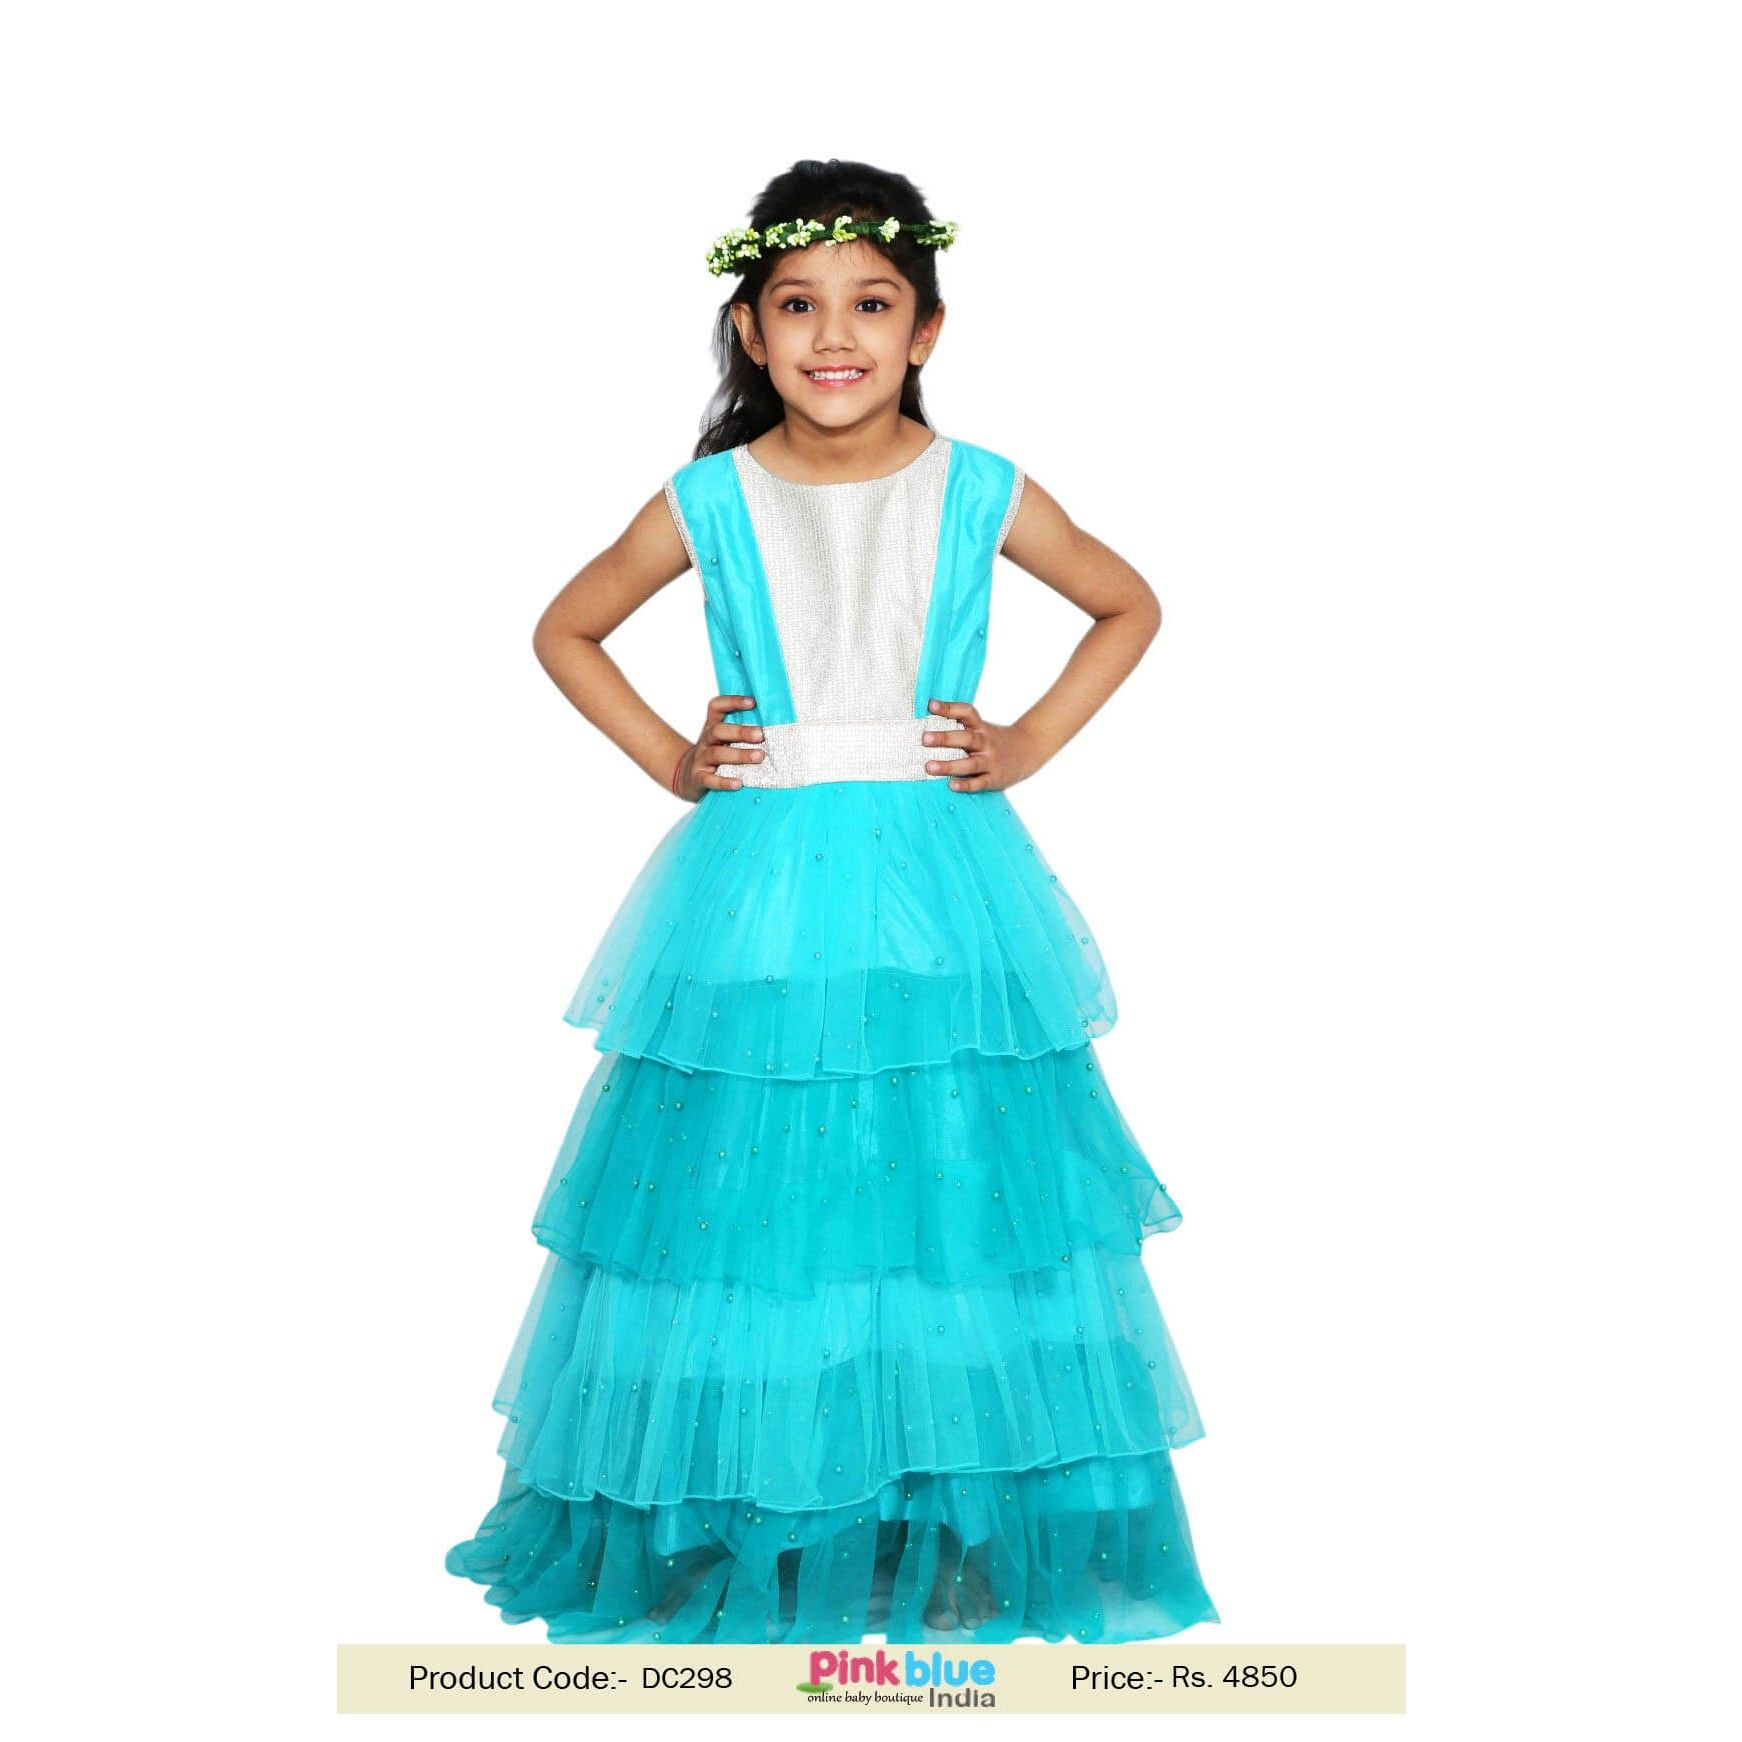 Long Tiered Frill Gown for Toddlers Tiered Ruffle